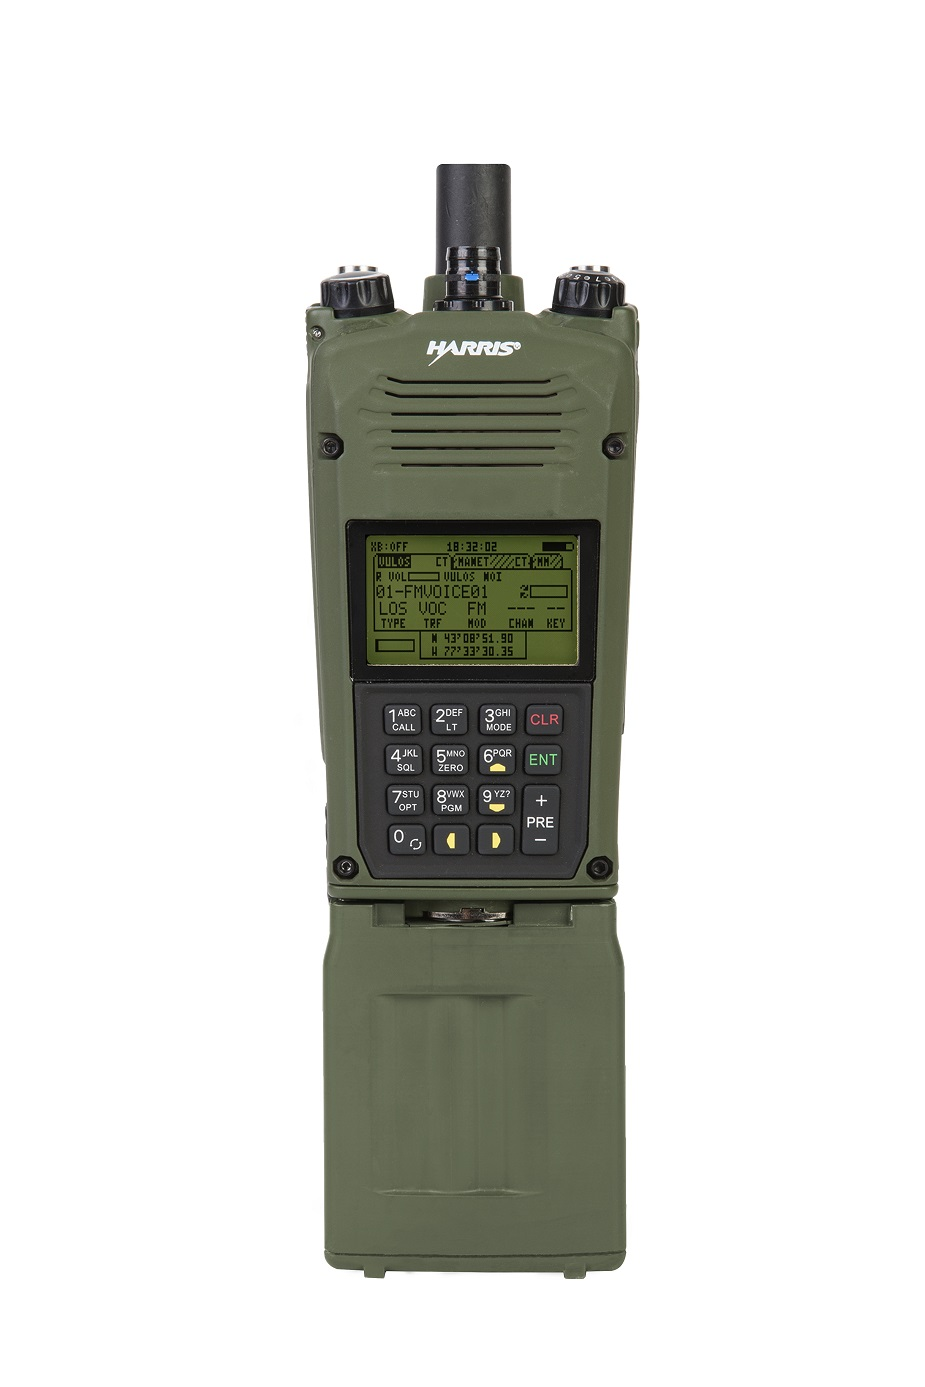 harris_corporation_an_prc_163_radio_nsa_type1_certification Online Form Army Up on statement charges, 2a usar, oer support,